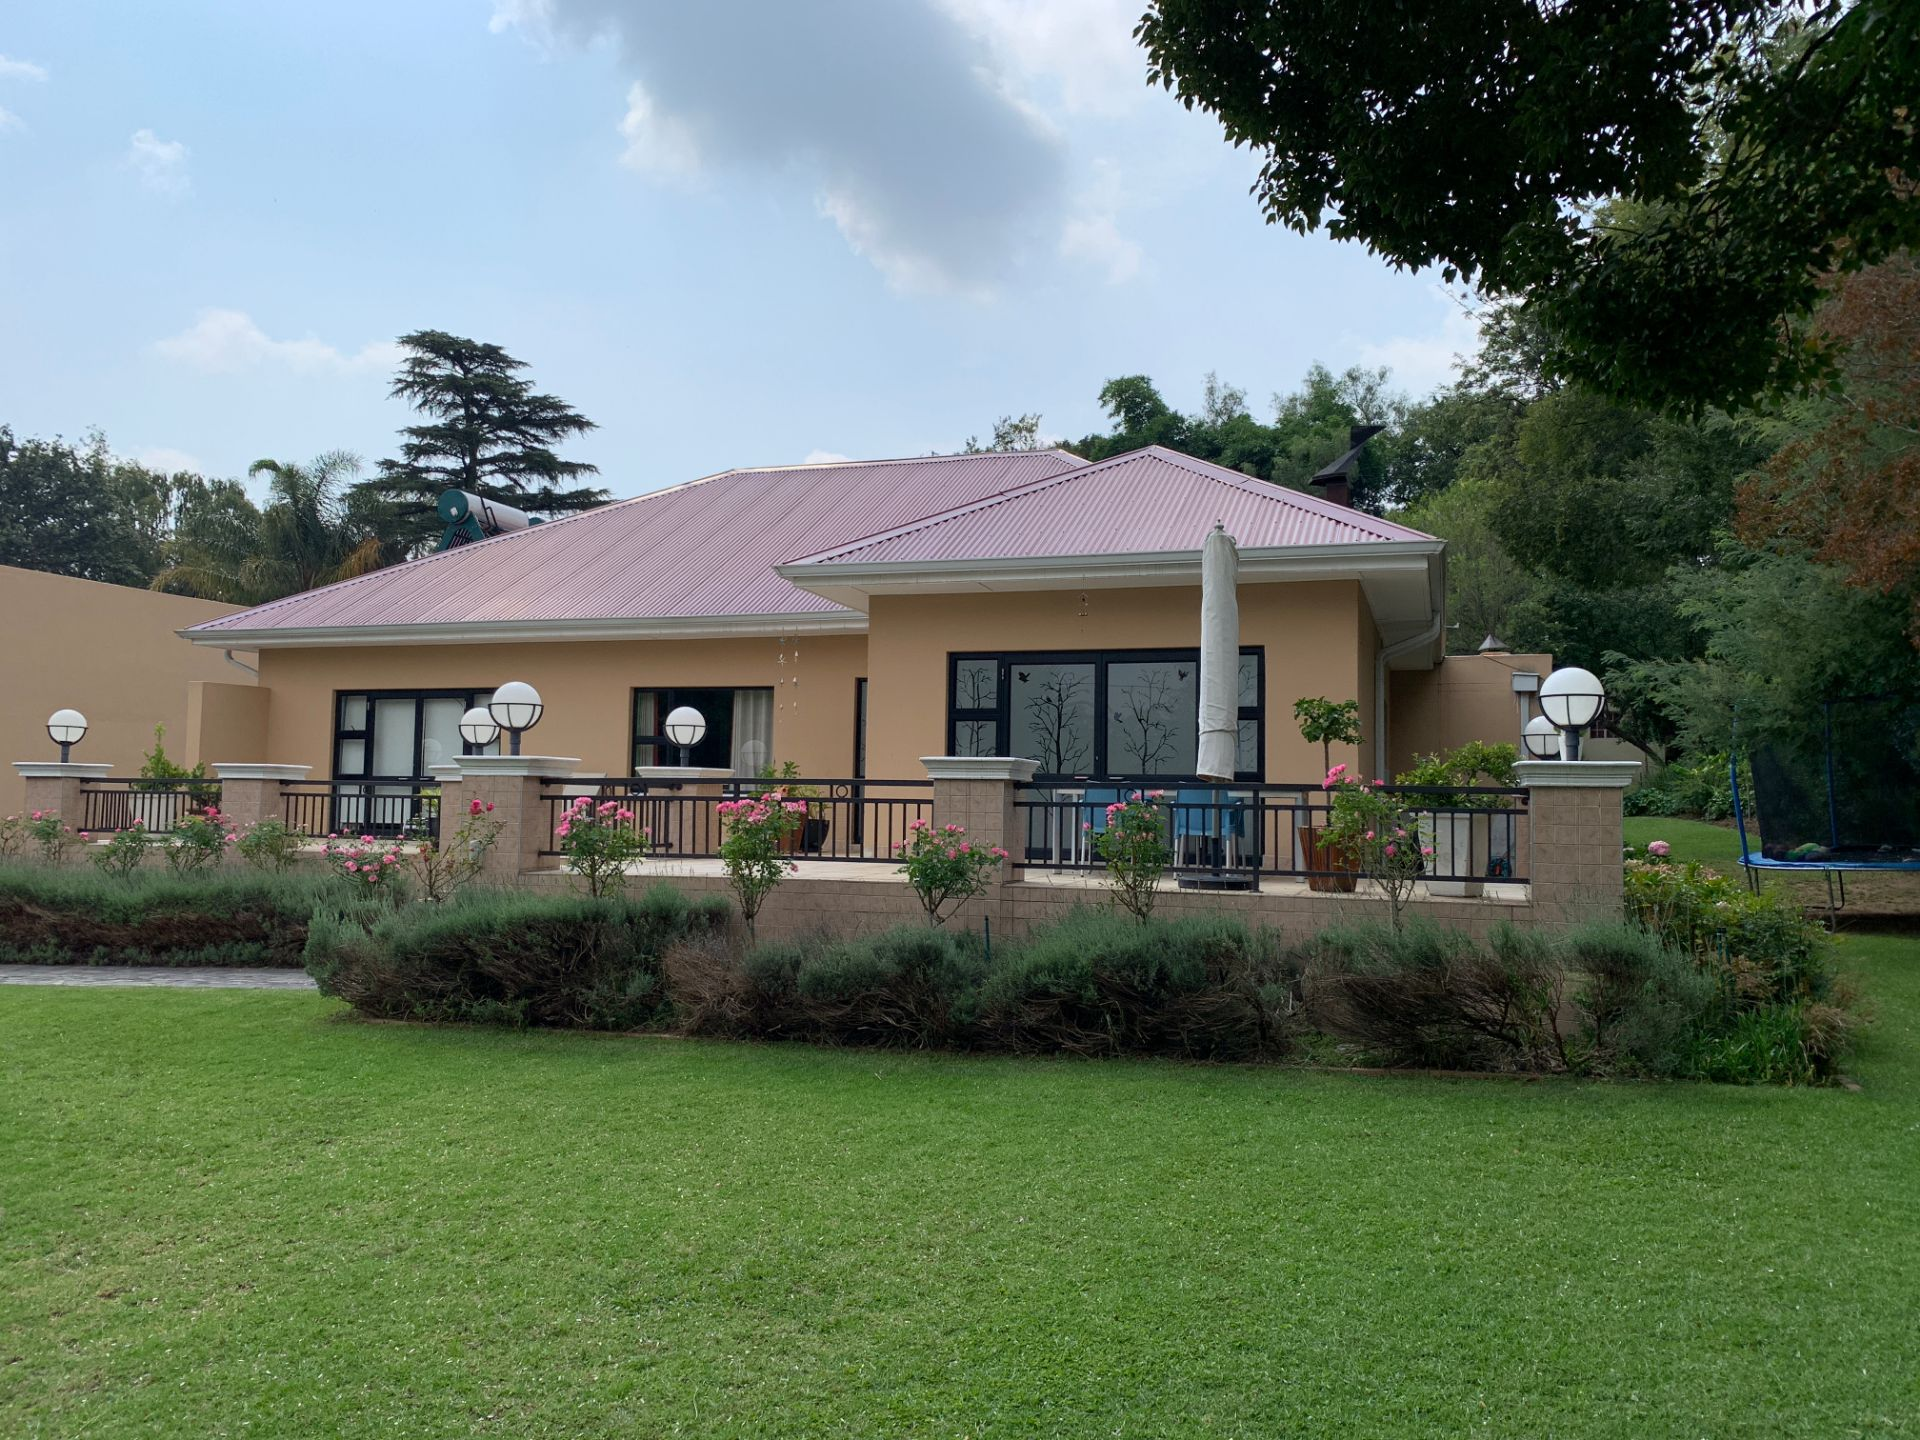 House in Craighall Park